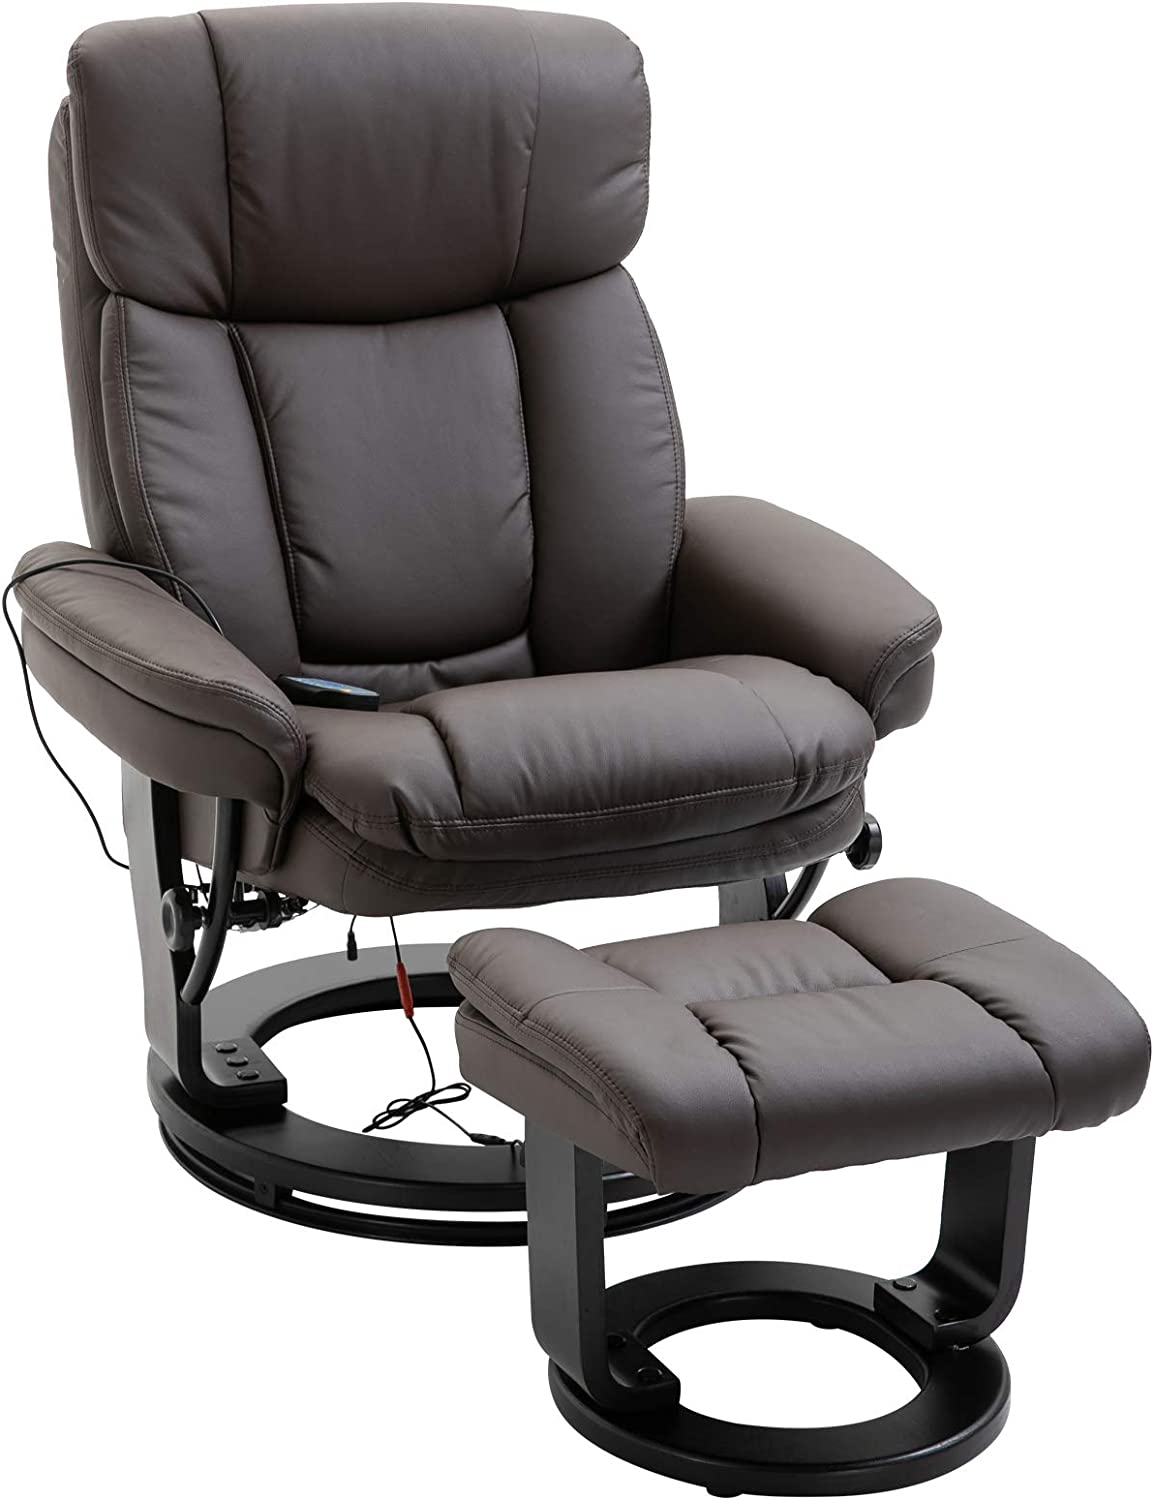 HOMCOM Massage Sofa Recliner Chair with Footrest, 10 Vibration Points, Faux Leather, Brown